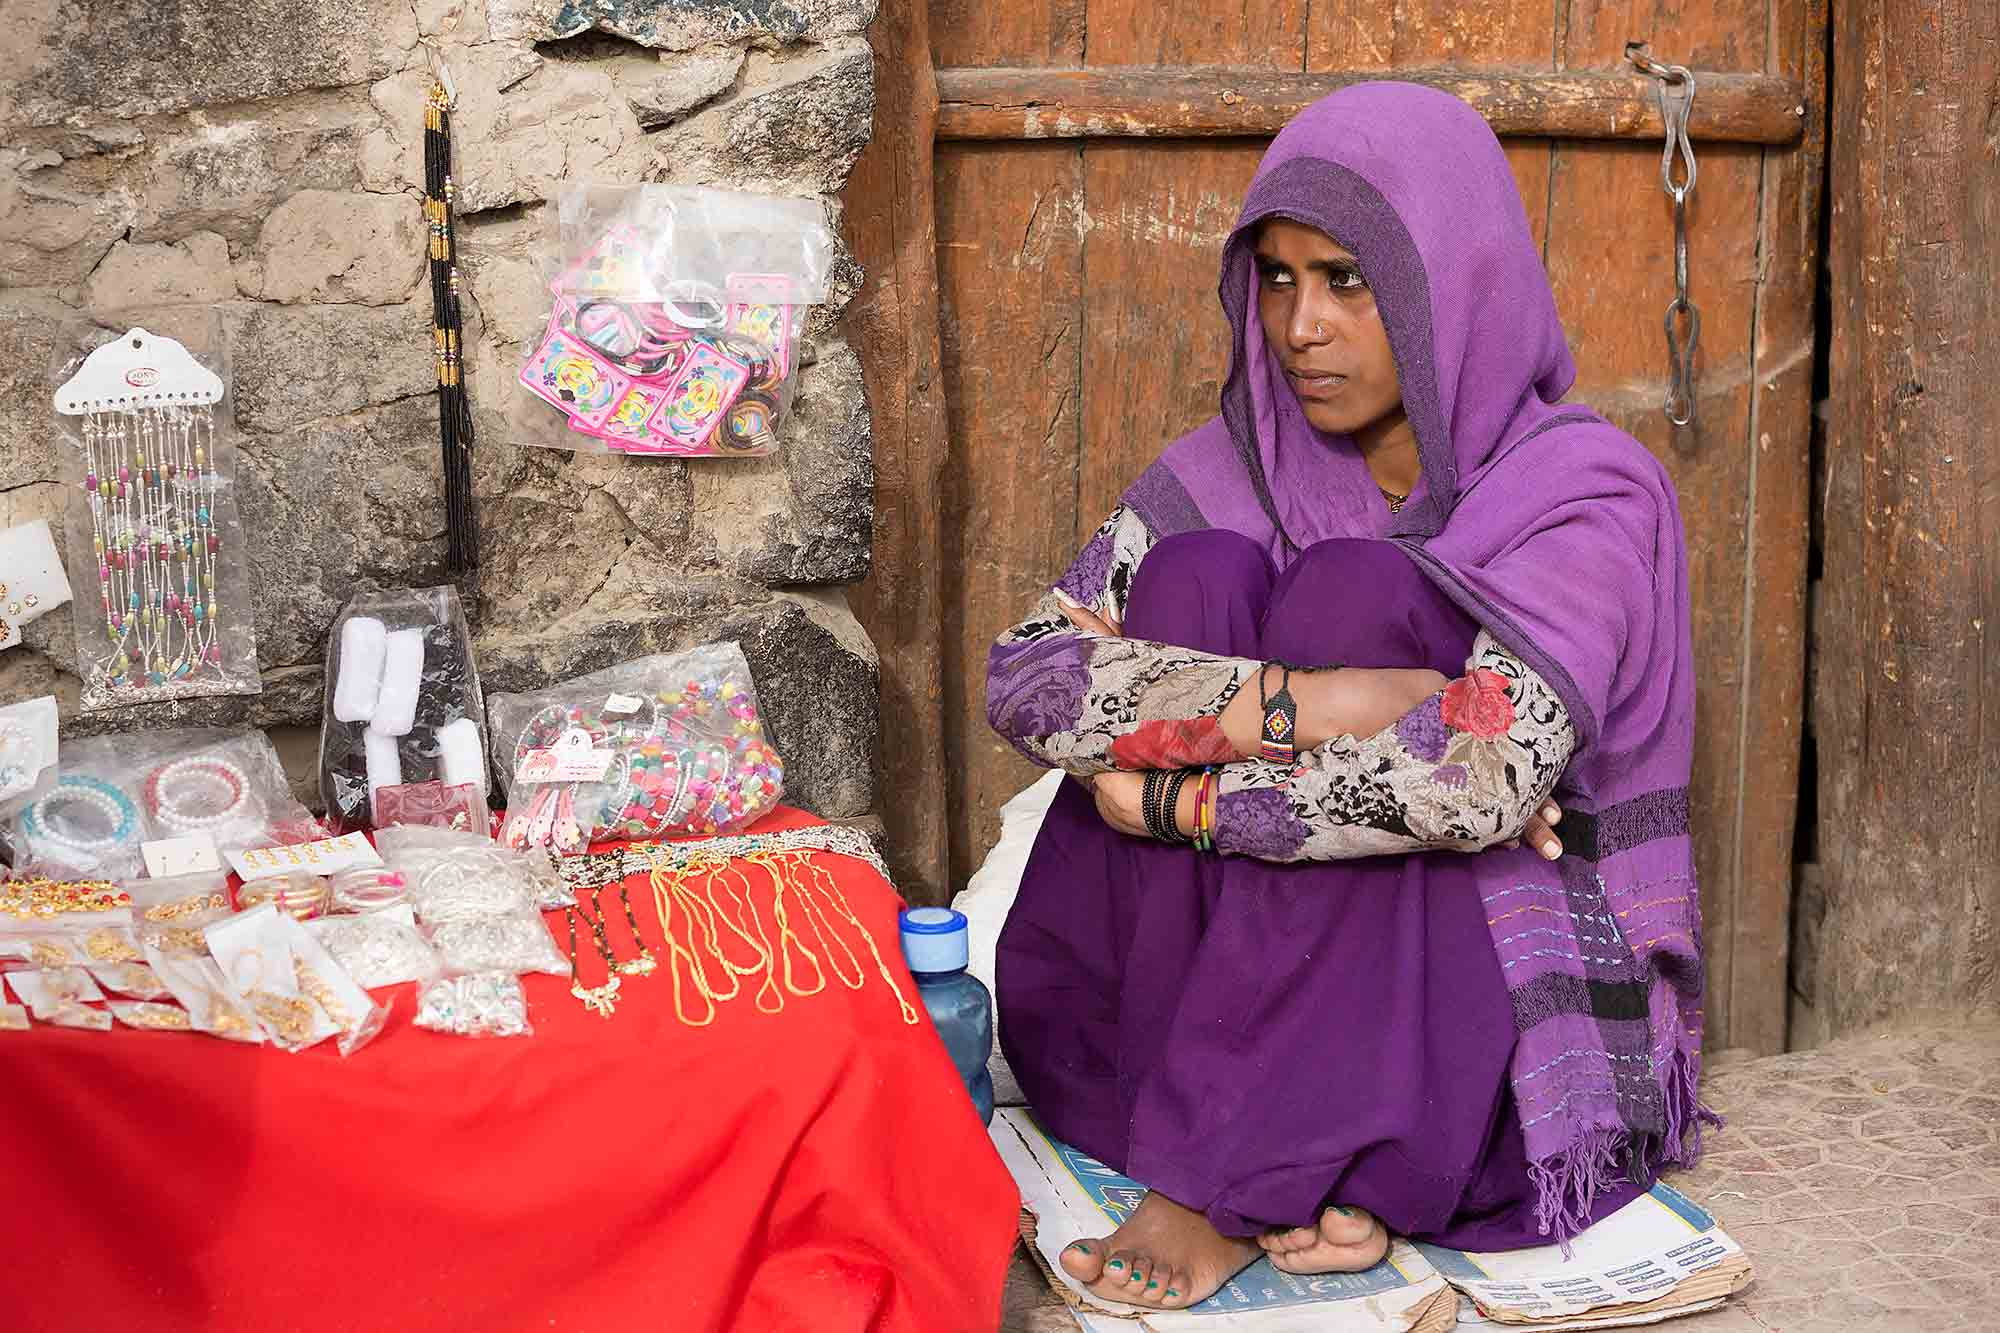 market-woman-leh-ladakh-kashmir-india